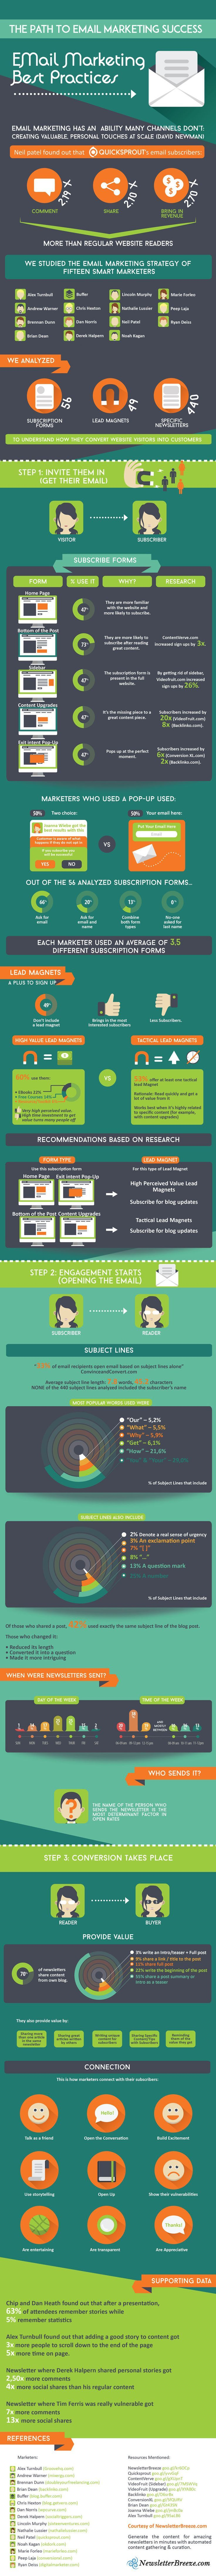 The Path to Email Marketing Success: Best Practices and Strategies of 15 Smart Marketers - infographic